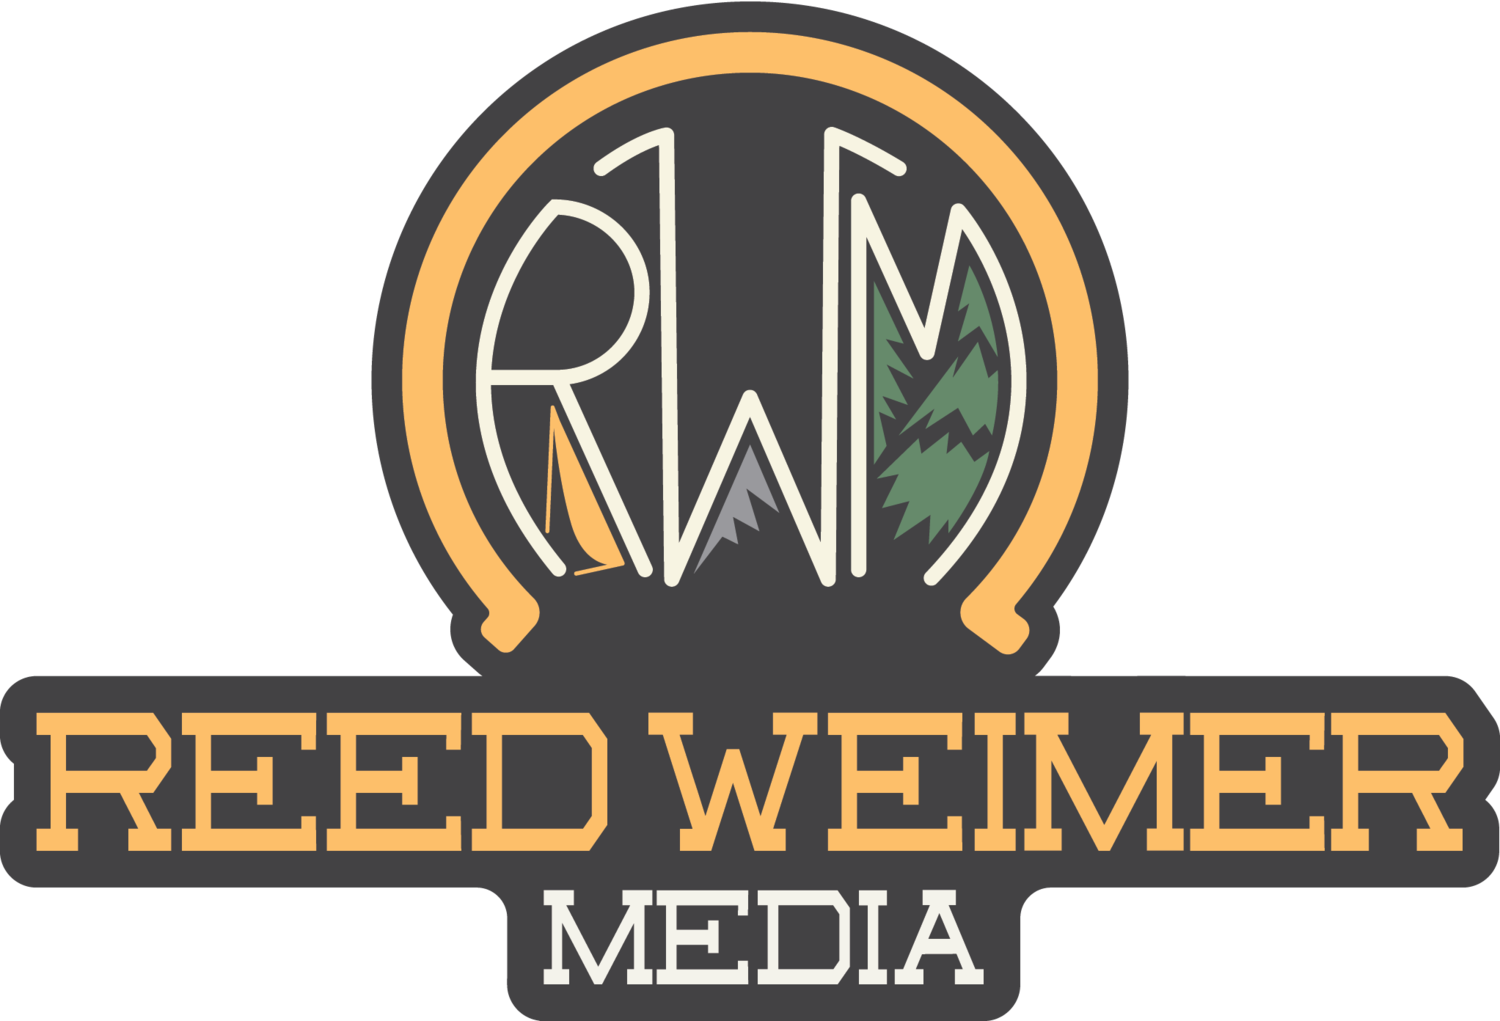 Reed Weimer Media